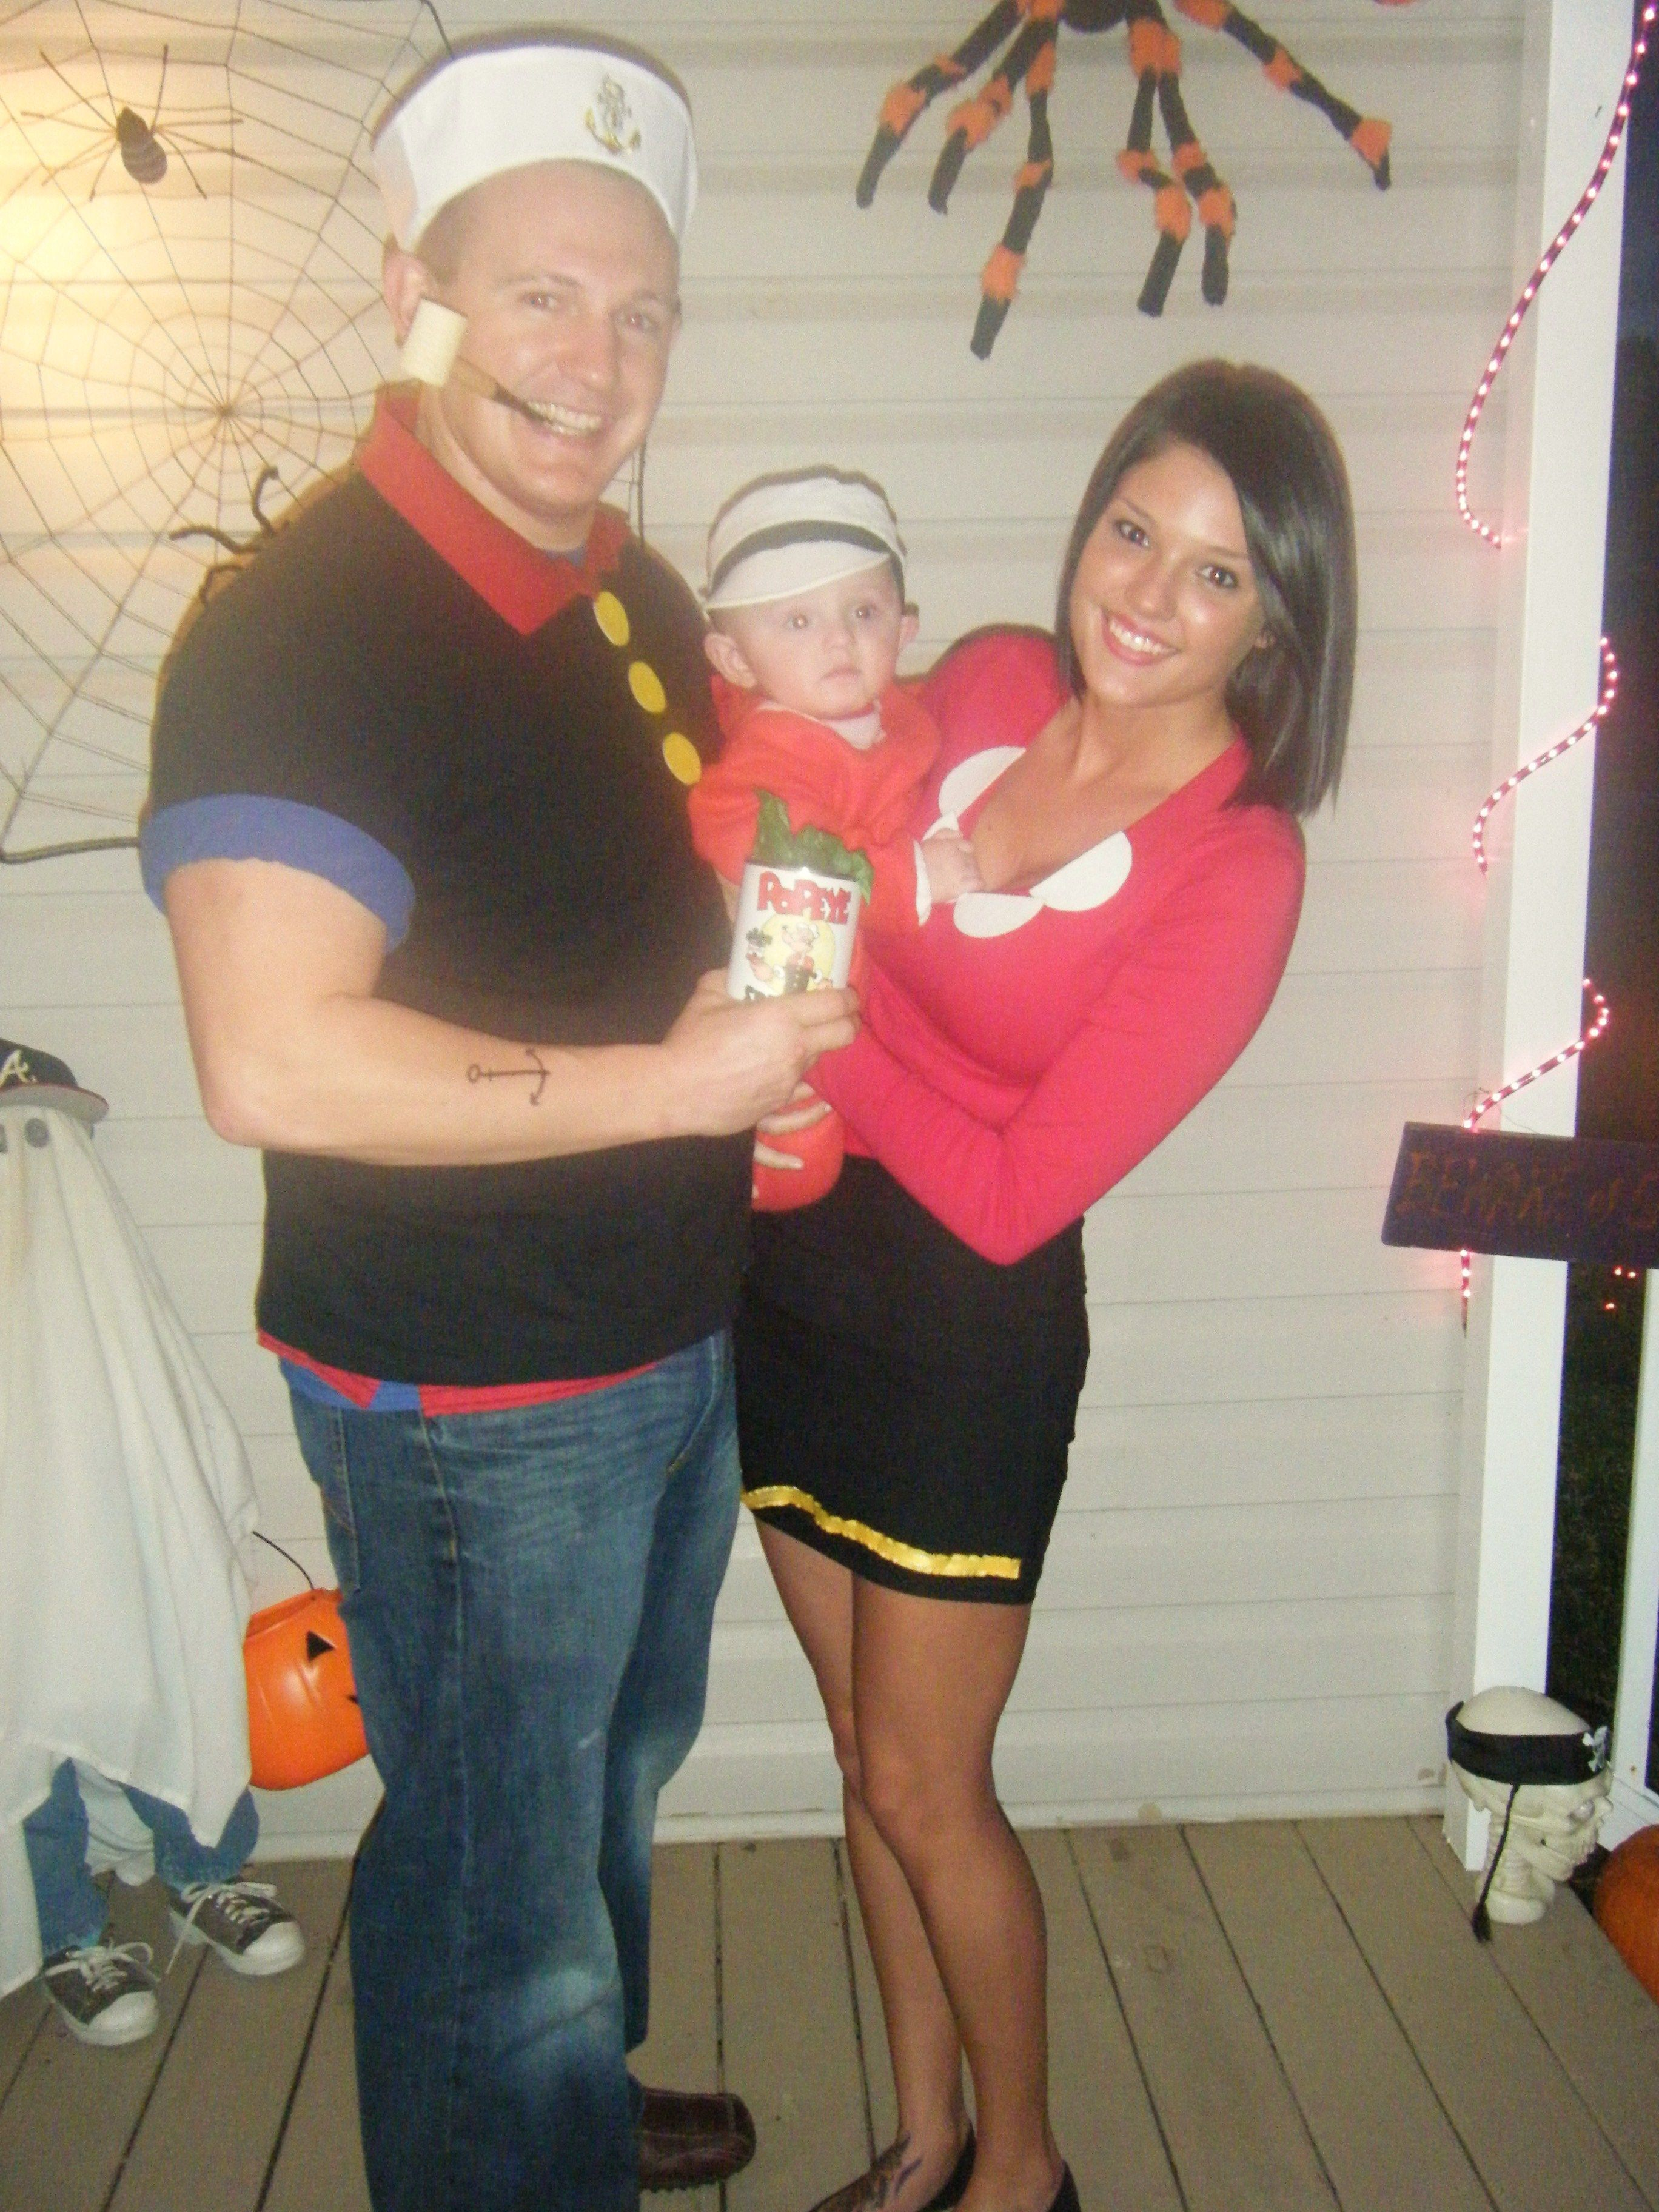 Popeye, Olive Oyl & Sweet Pea! Could deff see us doing this lol ...